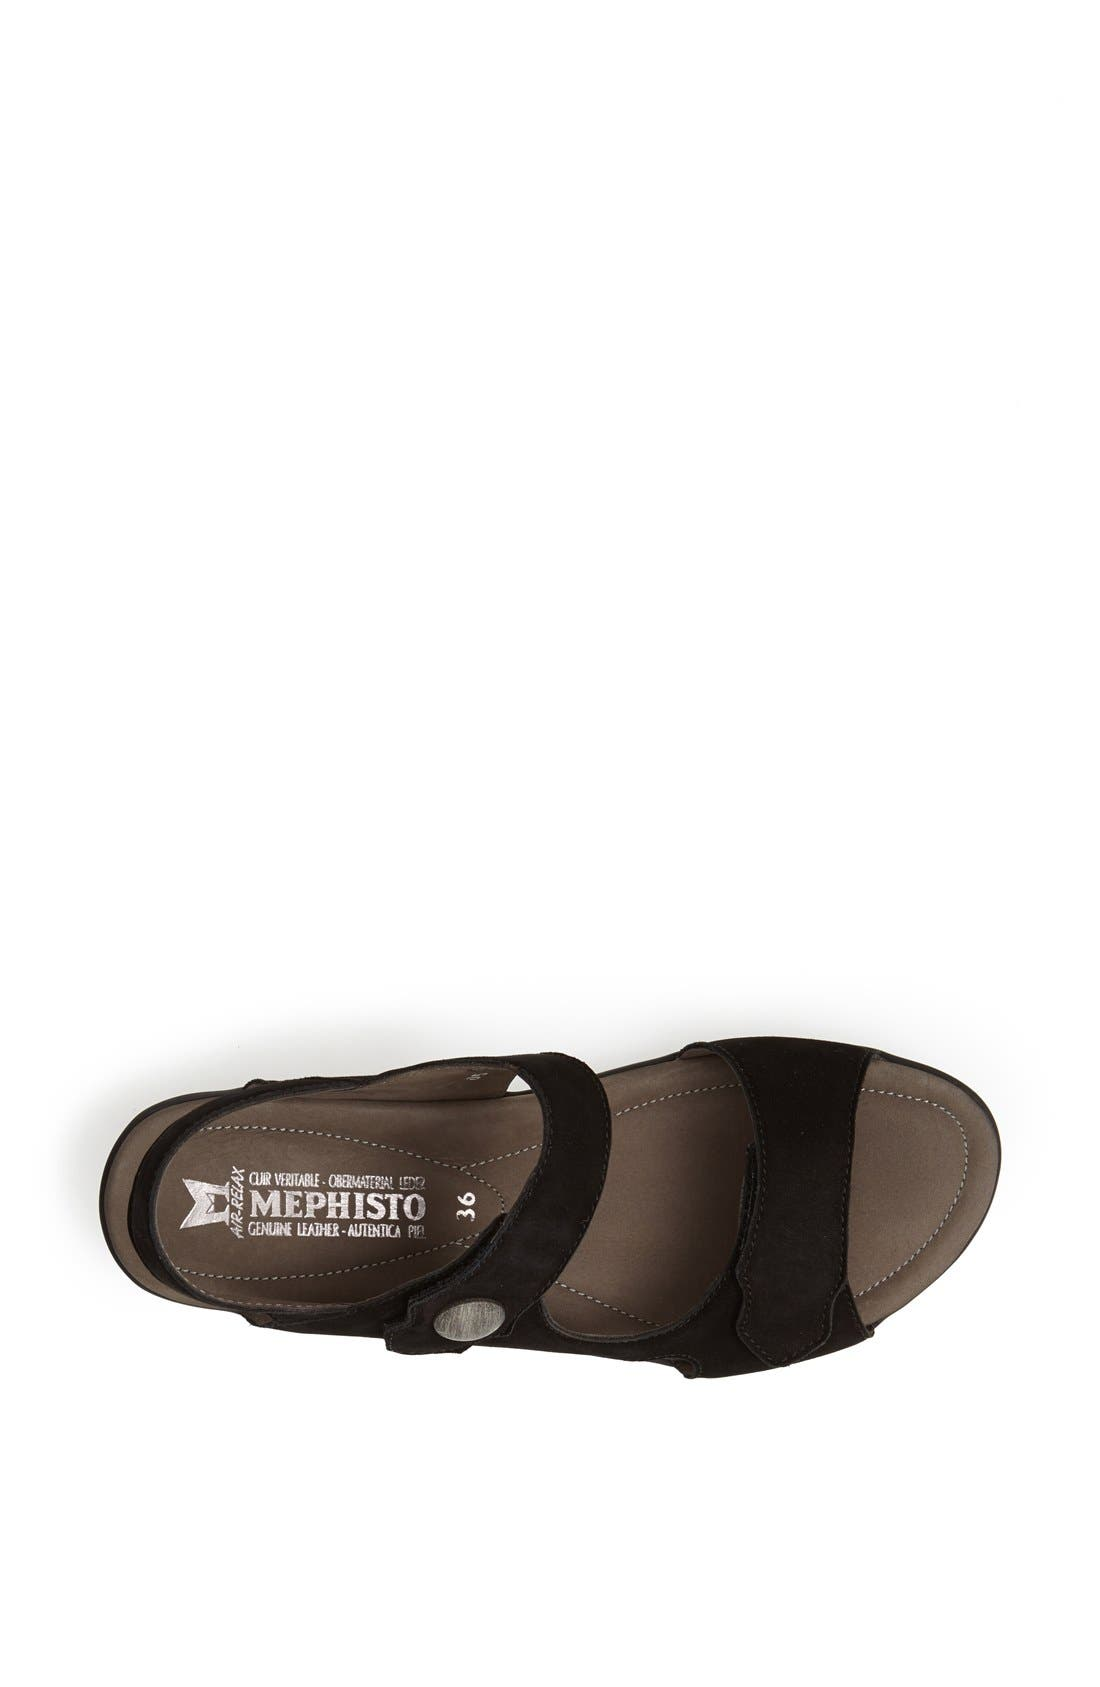 MEPHISTO, 'Prudy' Leather Sandal, Alternate thumbnail 3, color, BLACK NUBUCK LEATHER